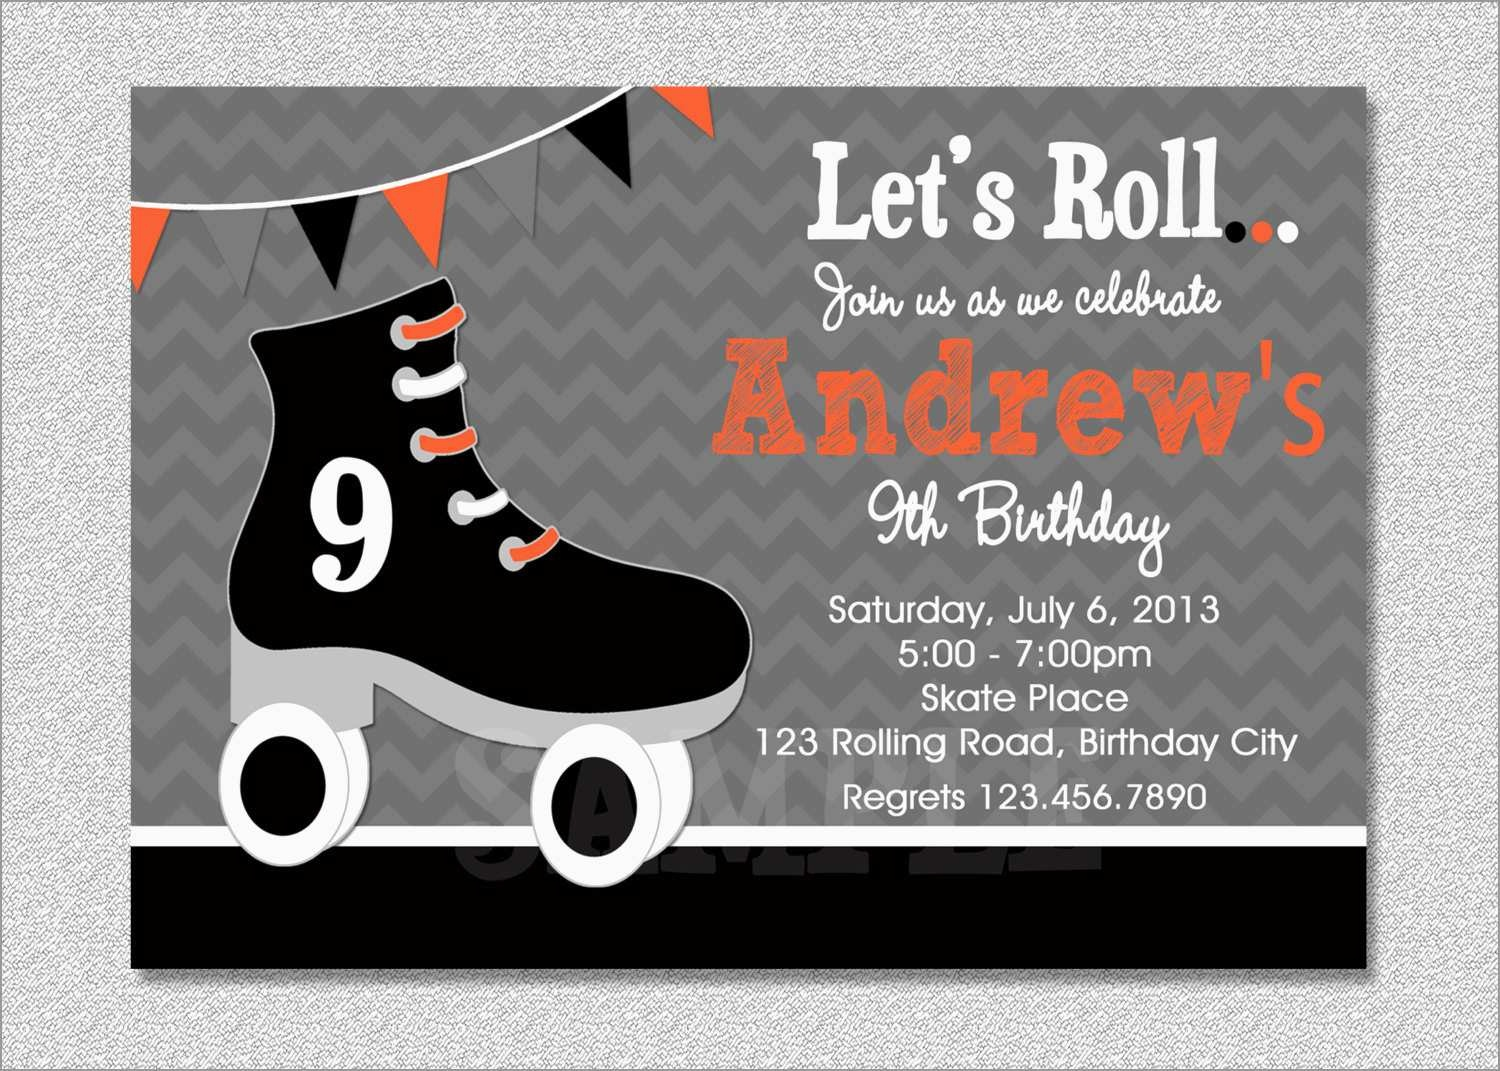 Luxury Skating Party Invitation Template Free | Best Of Template - Free Printable Roller Skating Birthday Party Invitations